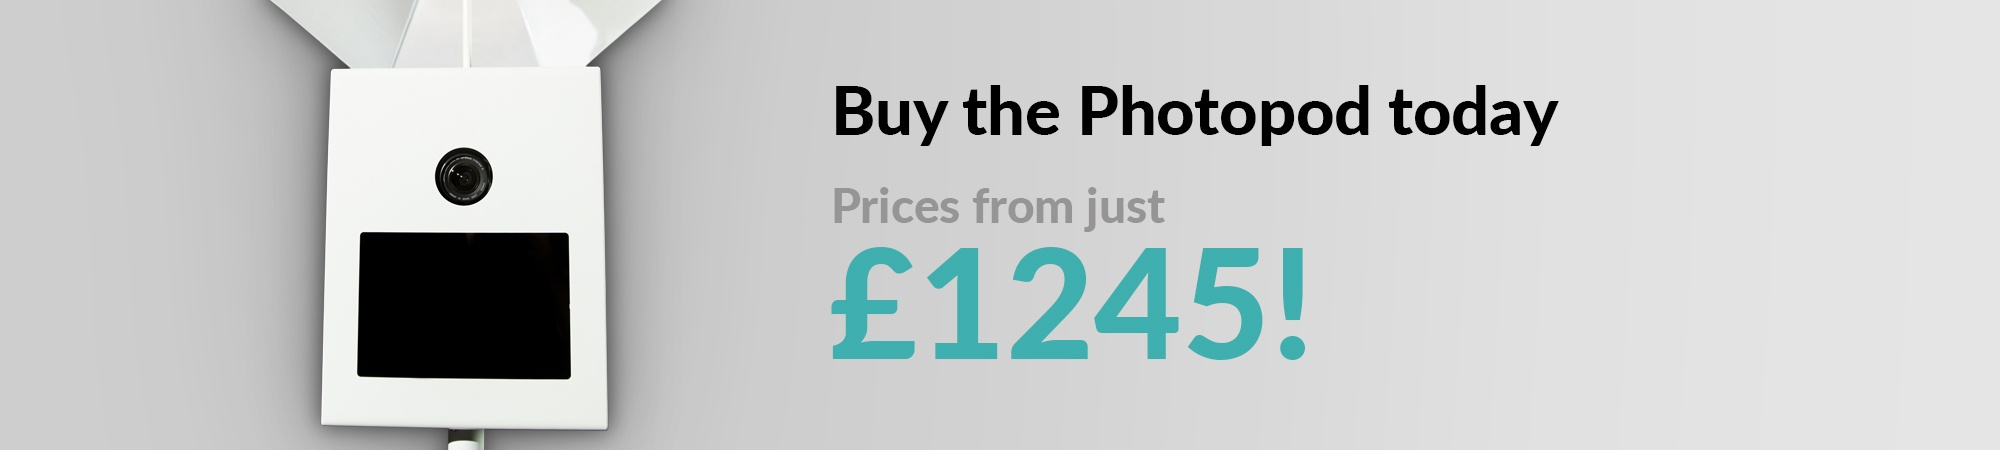 portable photo booth image click to buy the photopod today